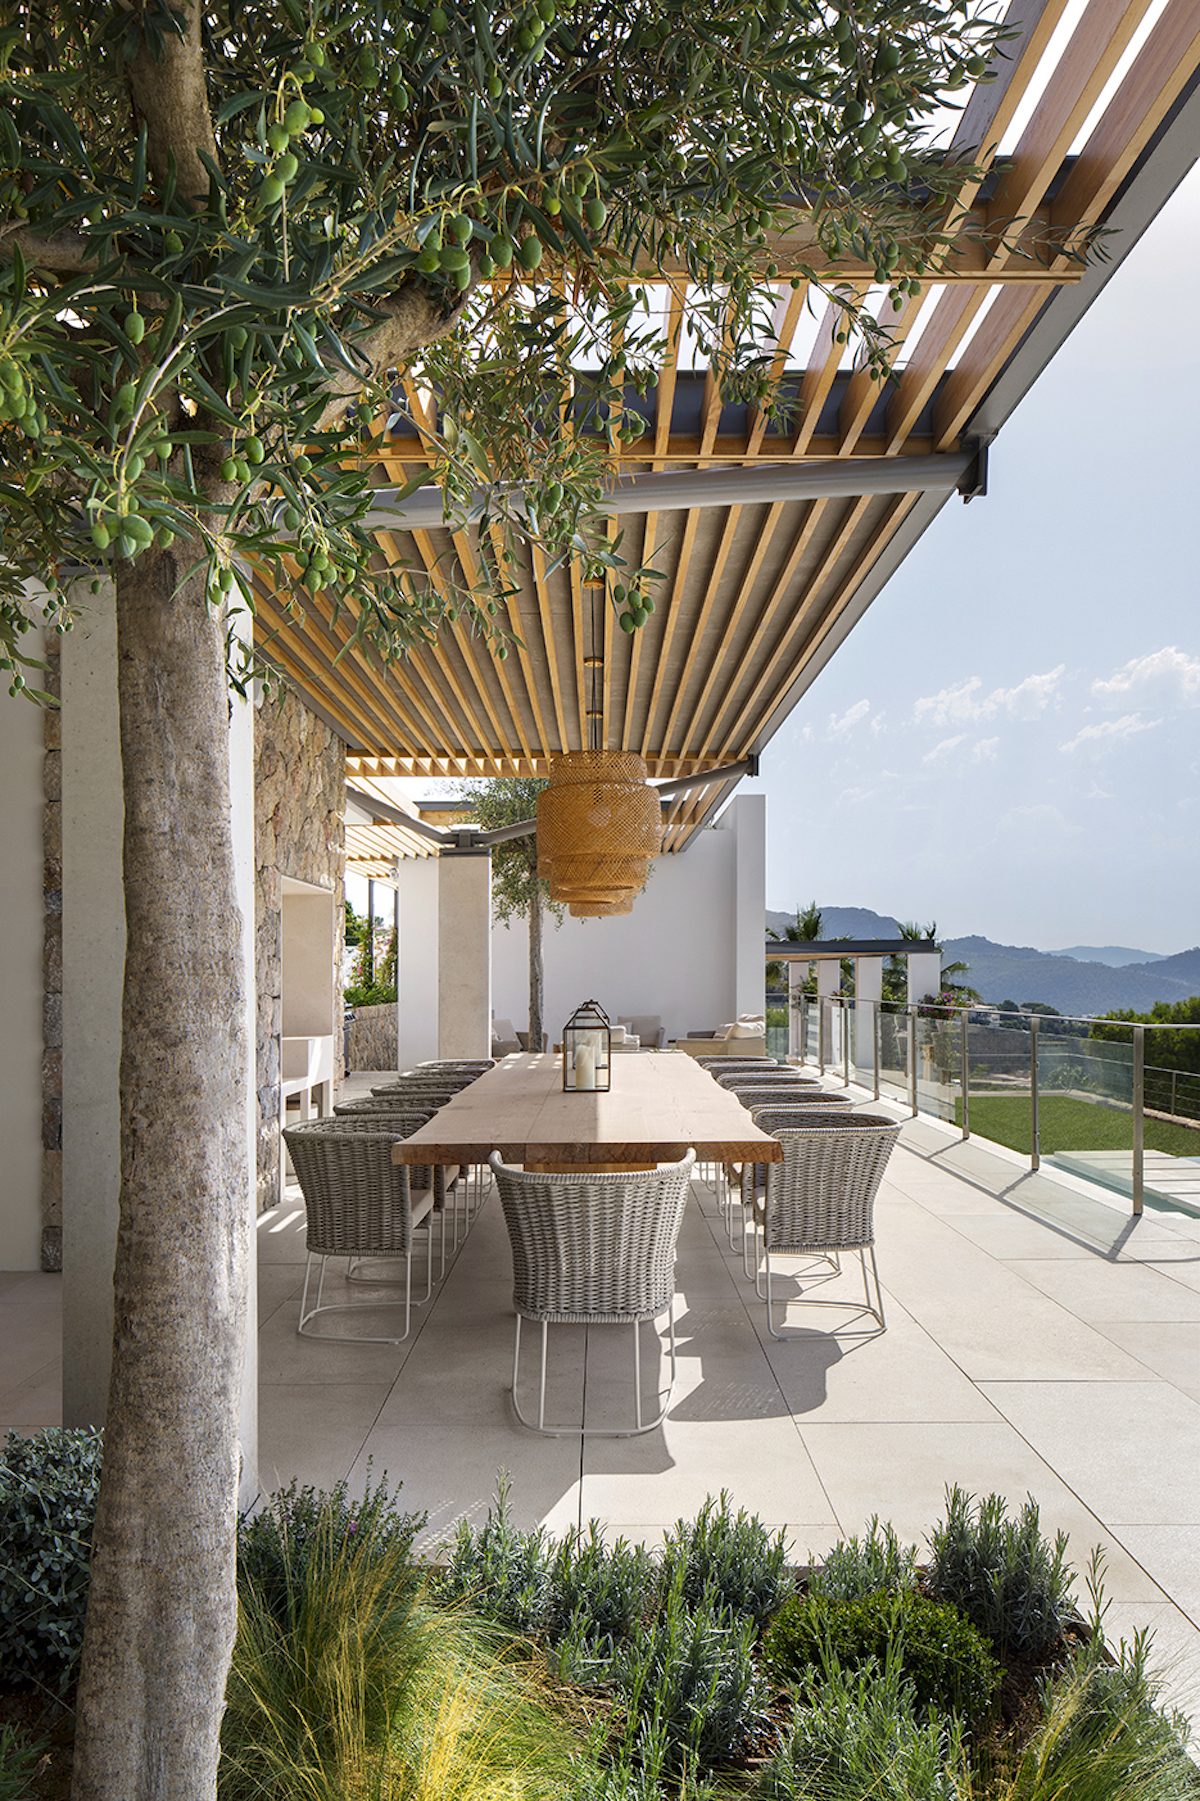 A beautiful wooden pergolas shades the al-fresco dining area which enjoys a panoramic view over the landscape